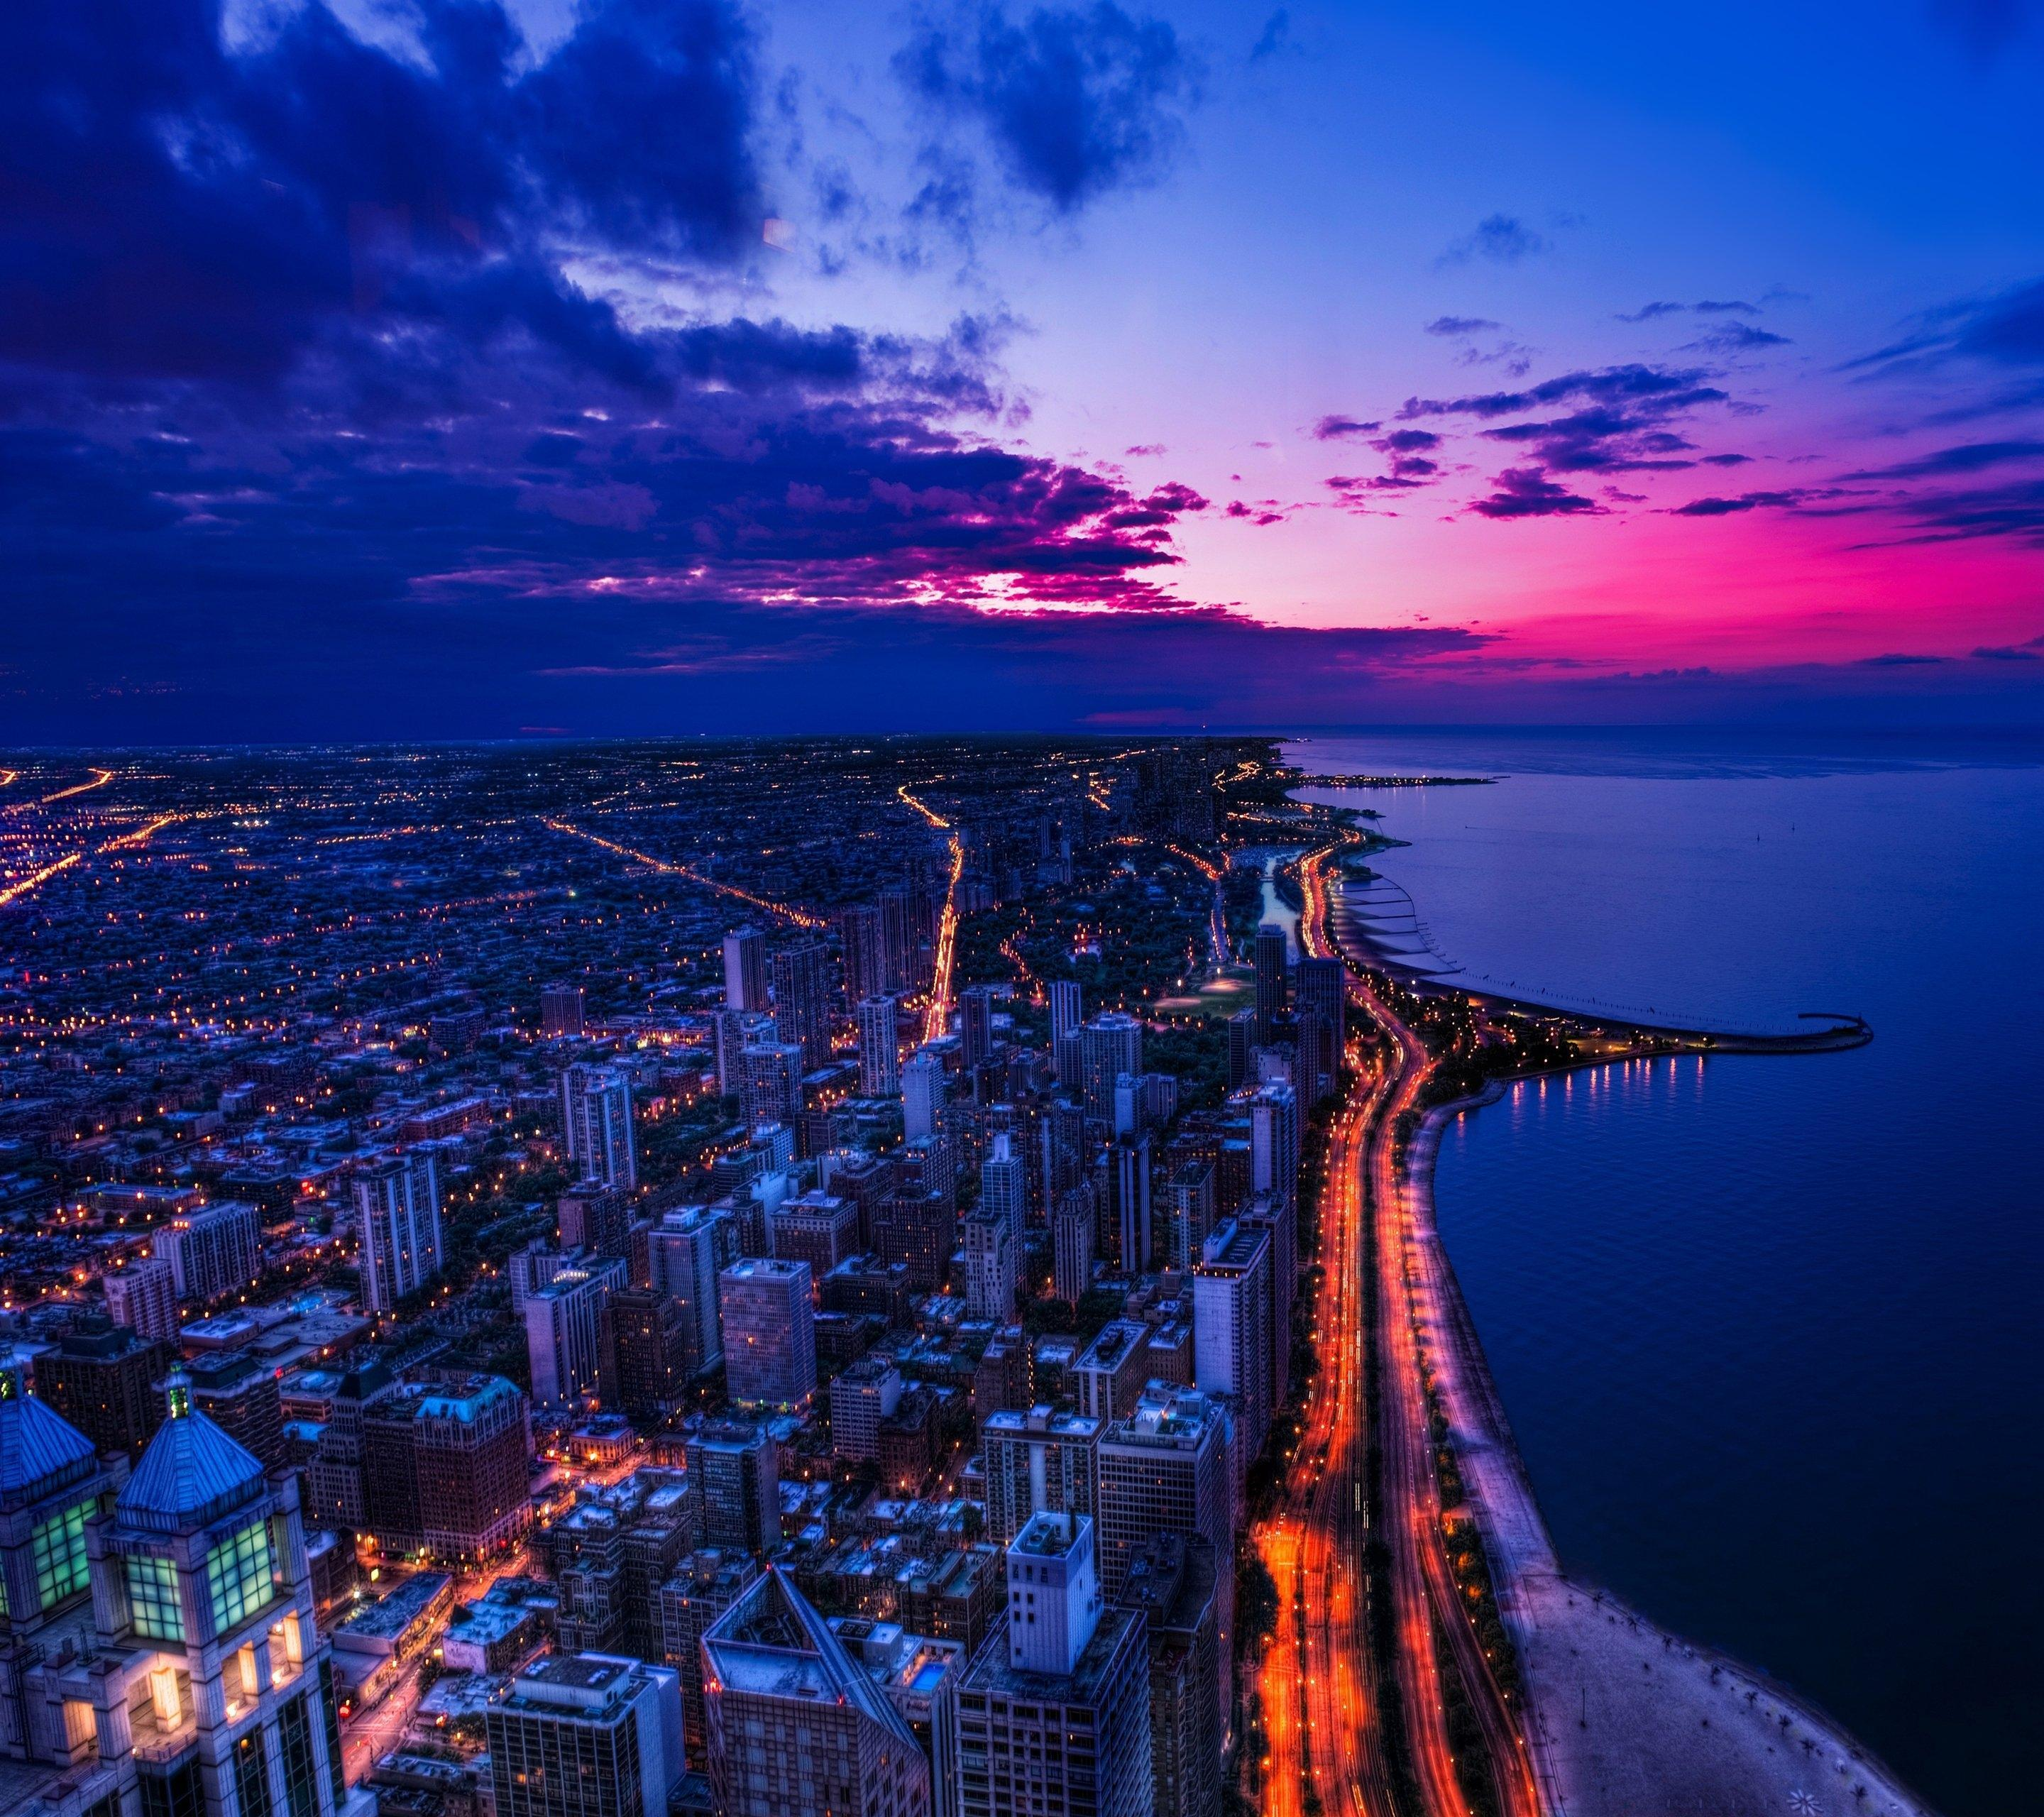 Download 2880x2560 Usa, Chicago, Sunset, Cityscape, Road, Lights